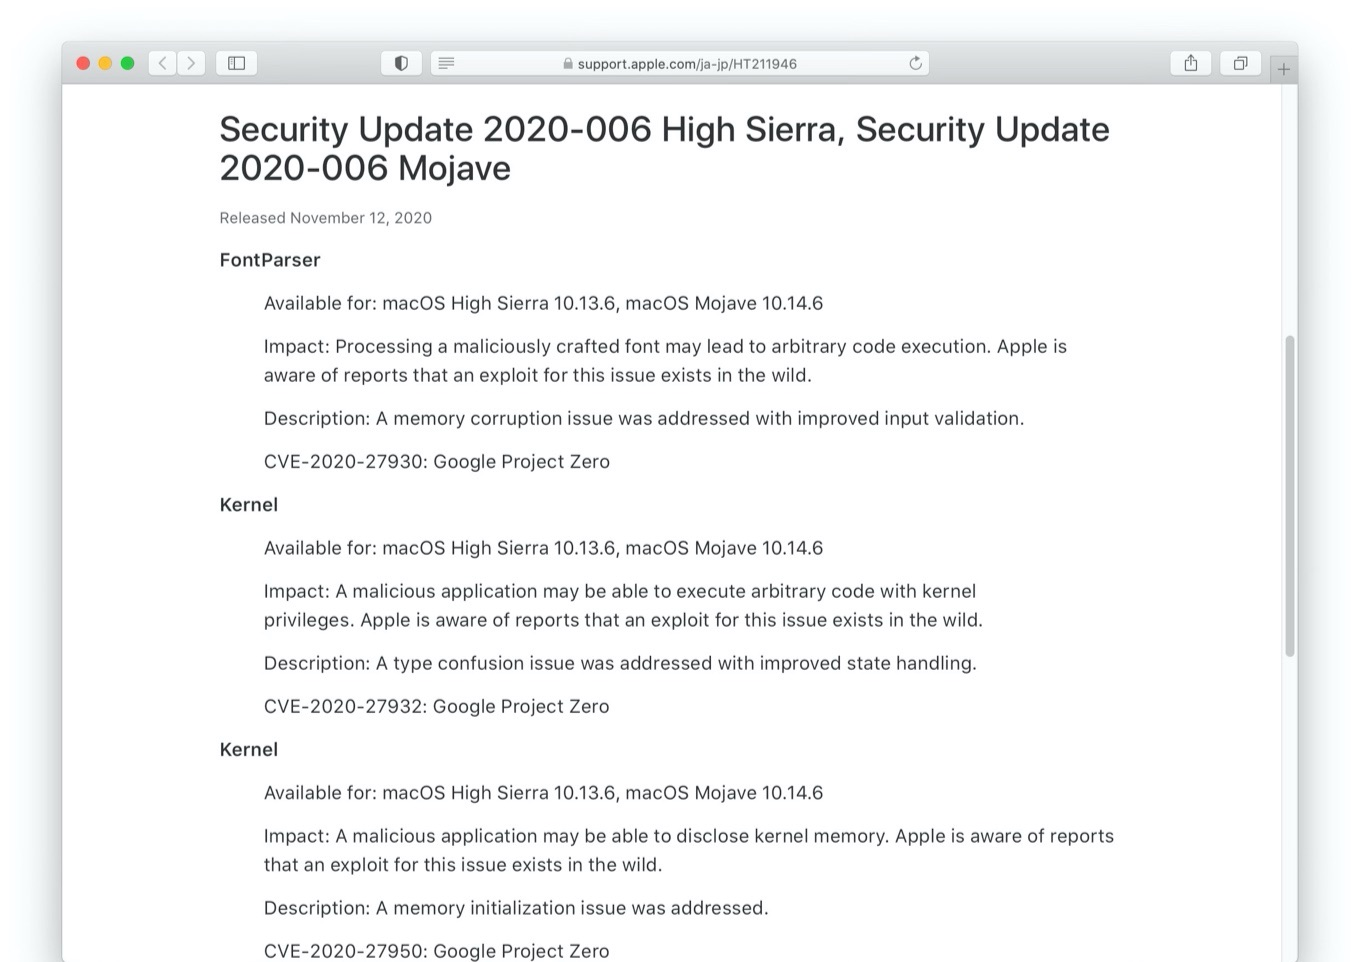 Security Update 2020-006 for macOS